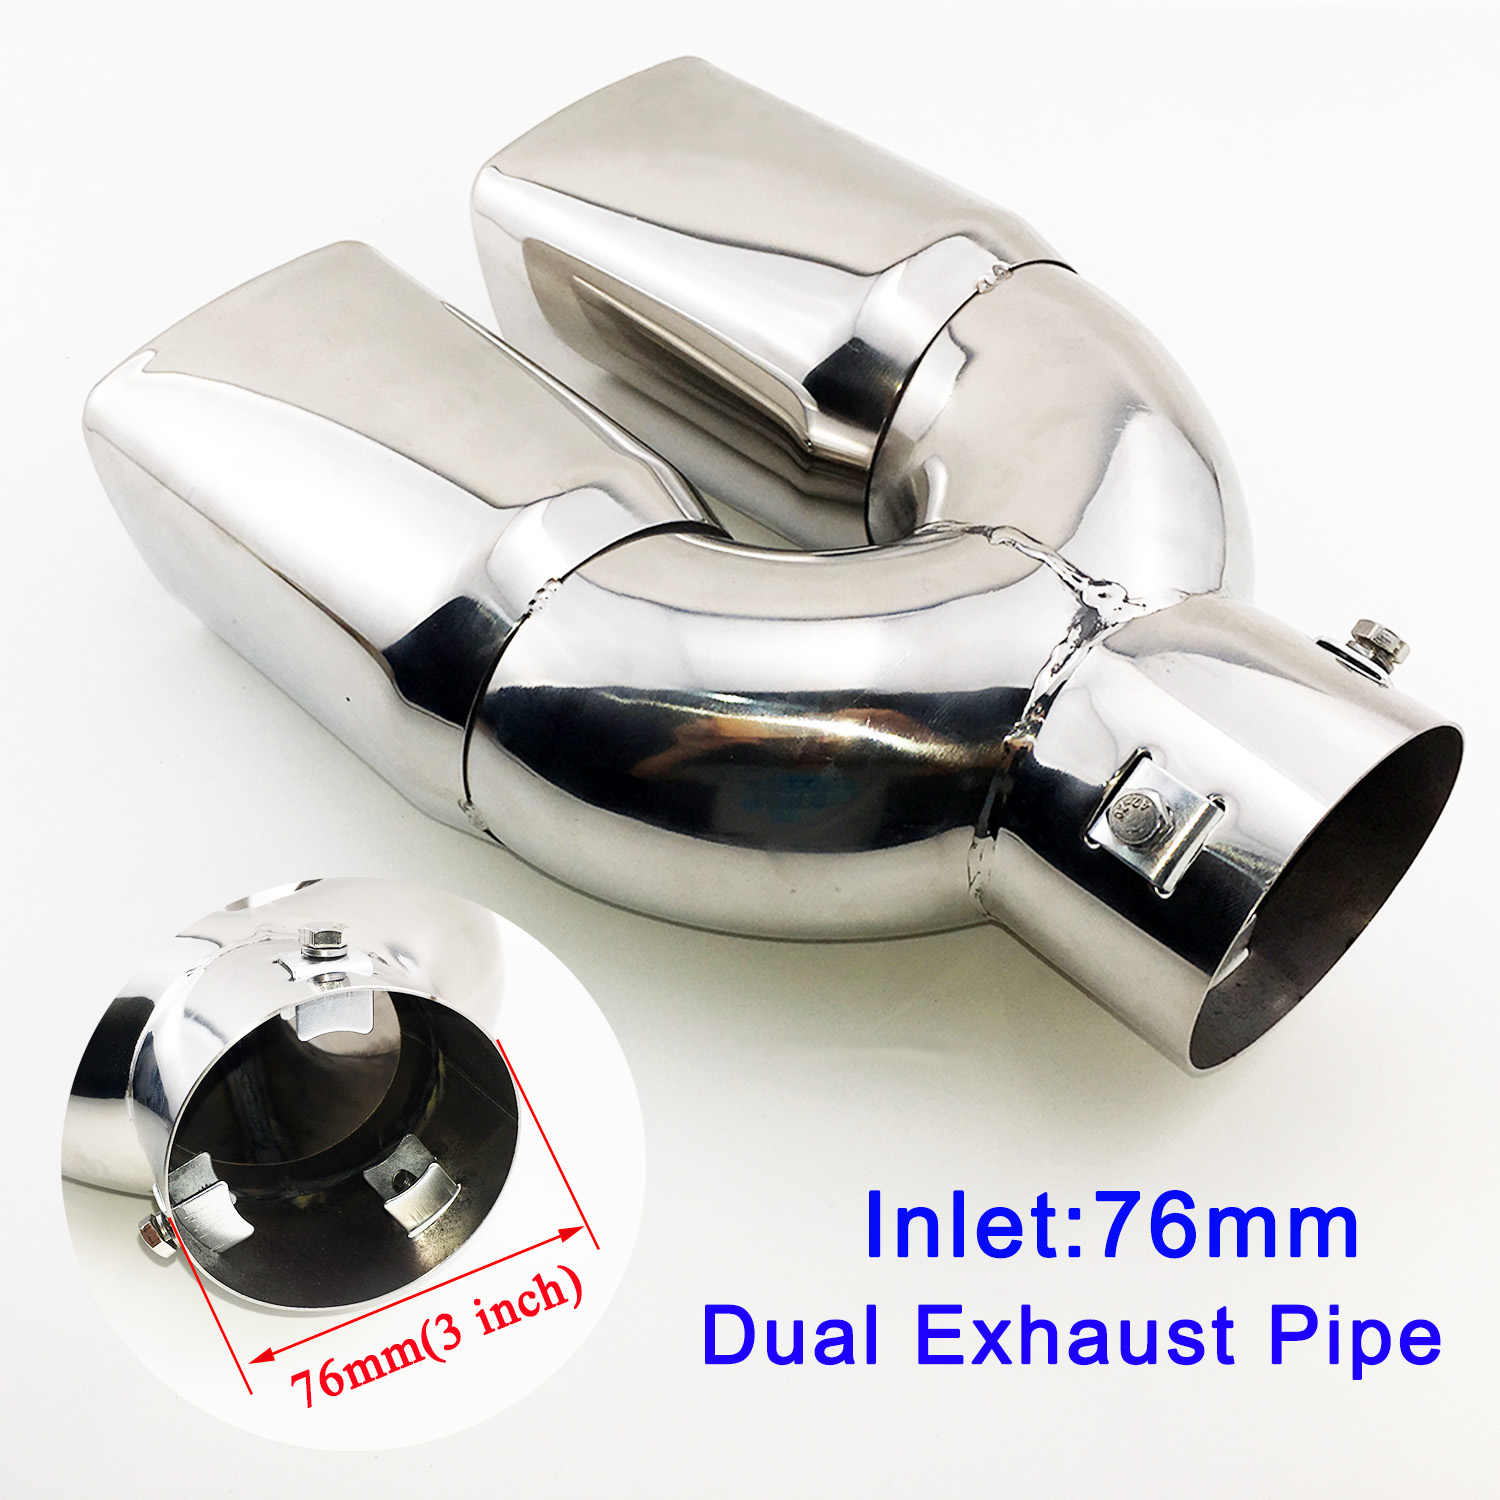 stainless steel rear exhaust muffler tailpipe universal 3 inch 76mm caliber inlet dual outlet tail end pipe tip cover part